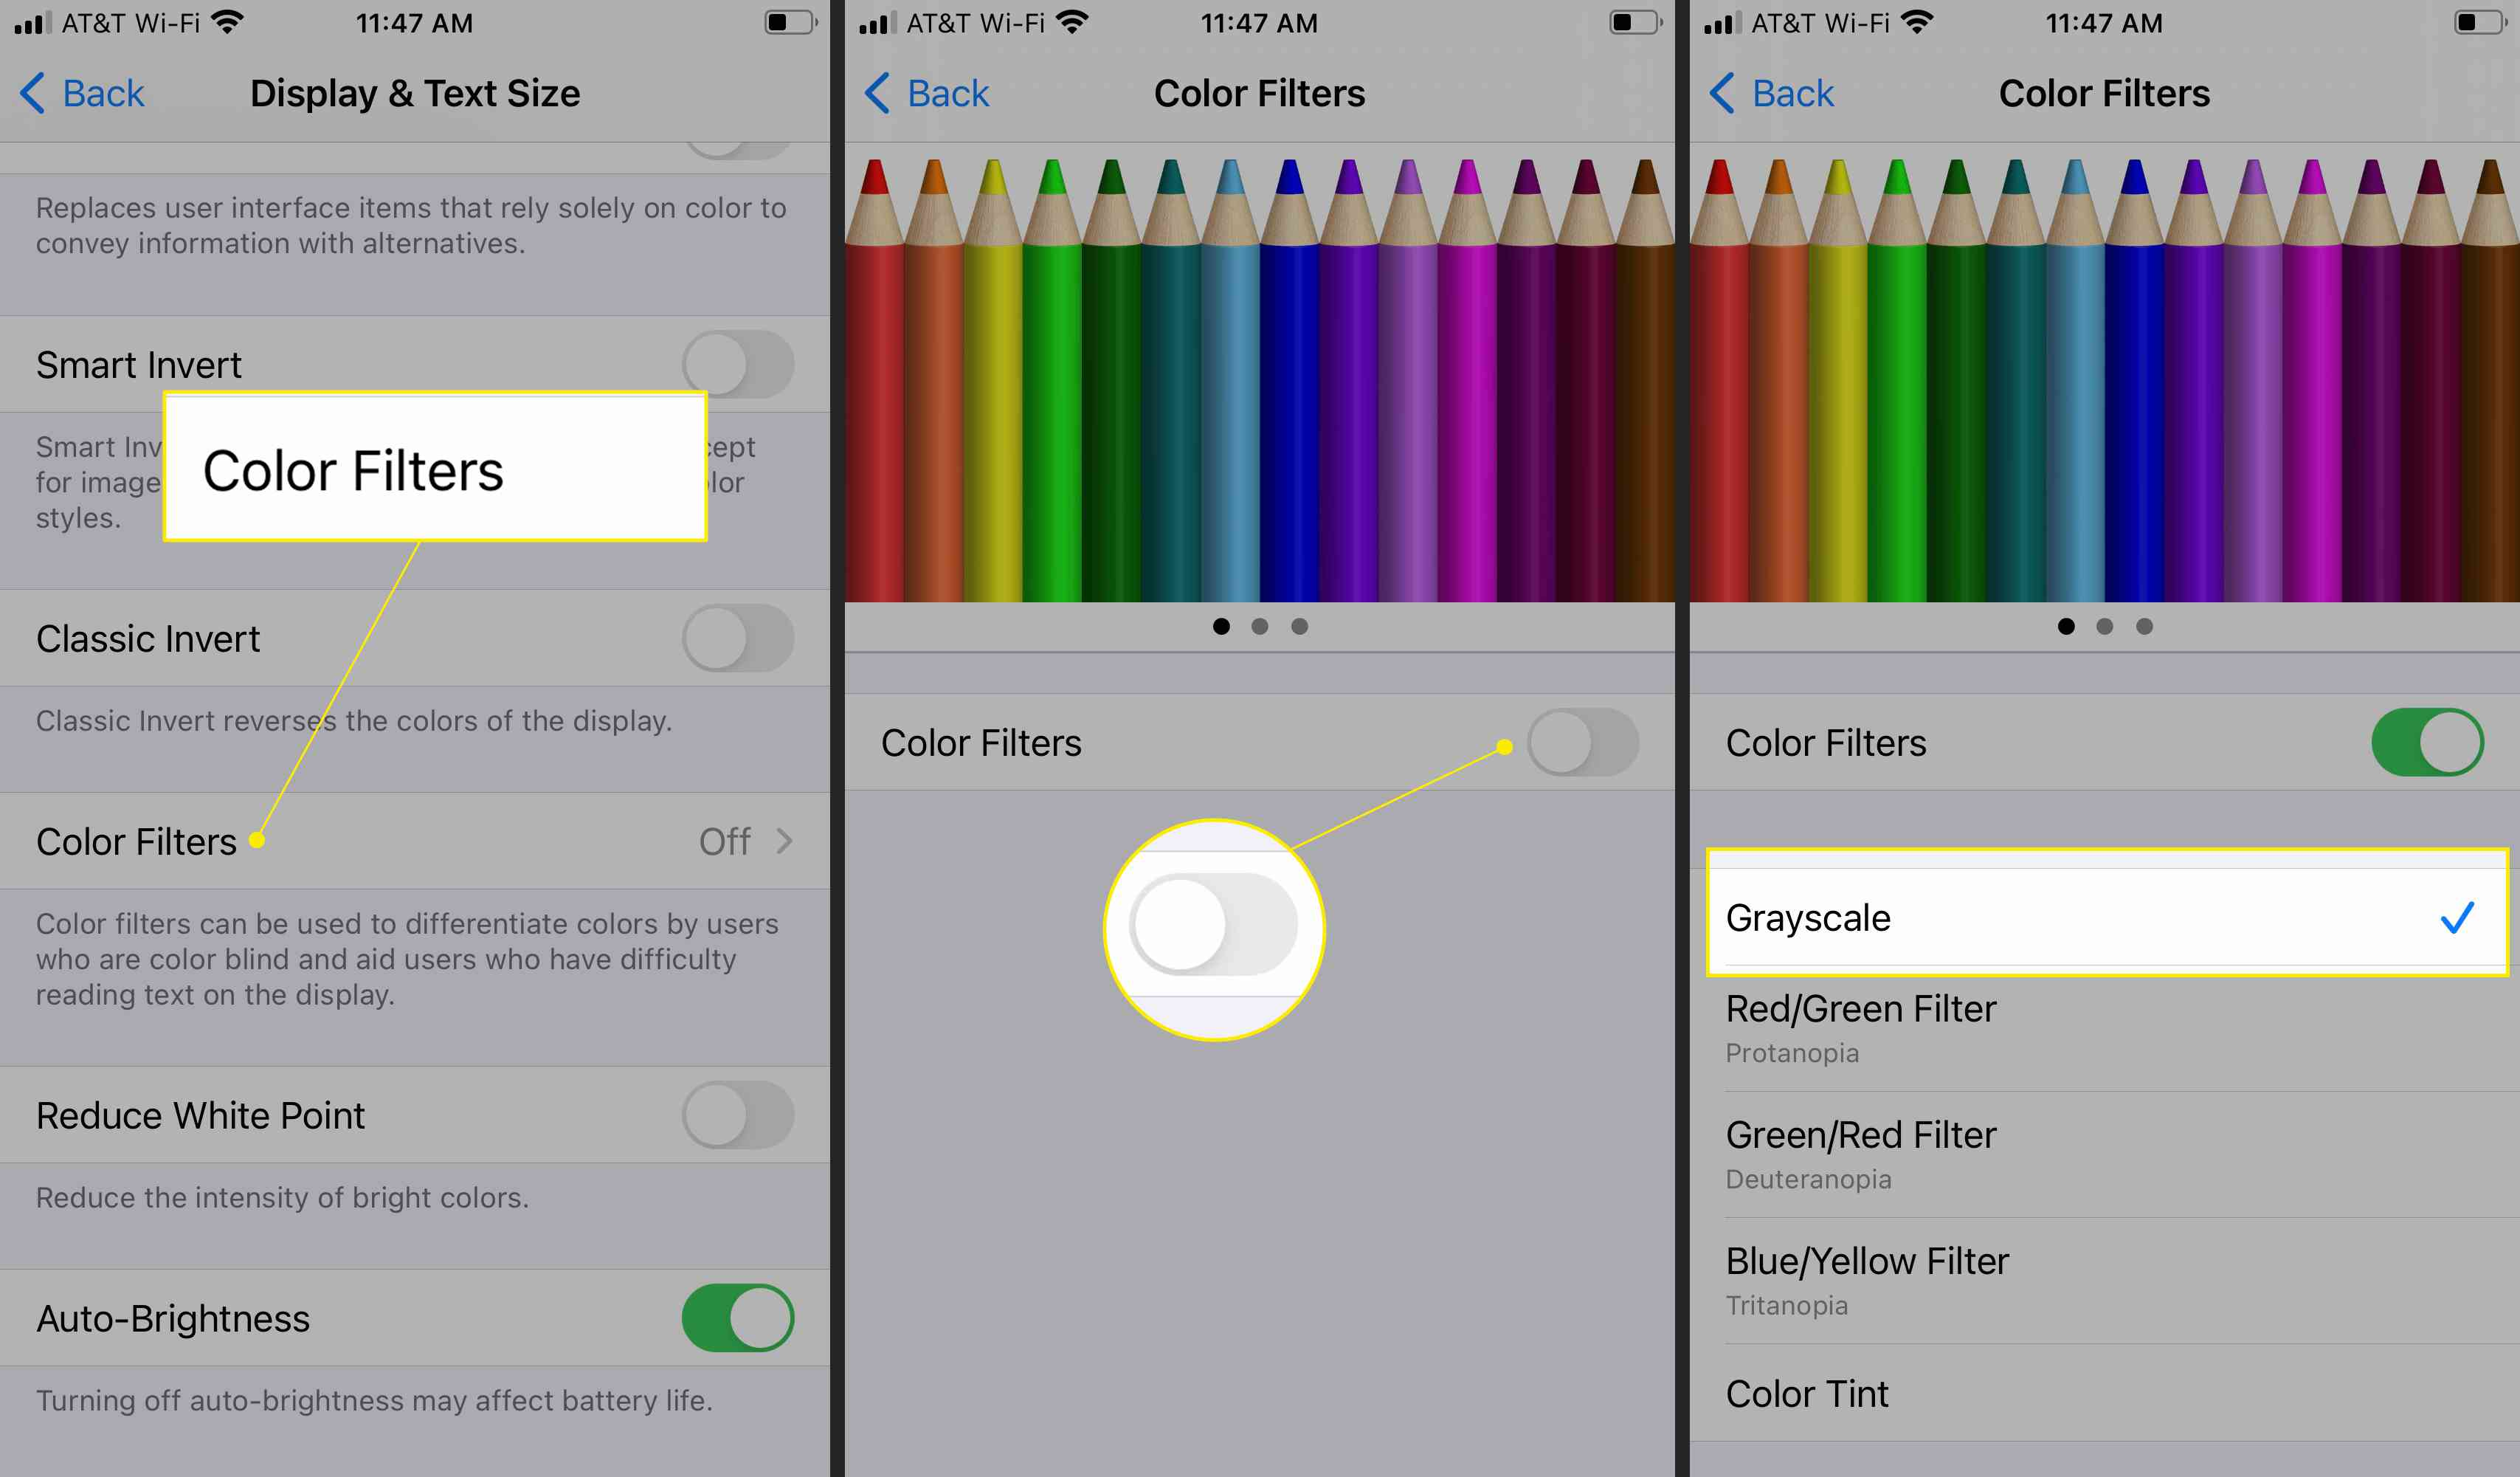 Color Filter accessibility options showing Grayscale